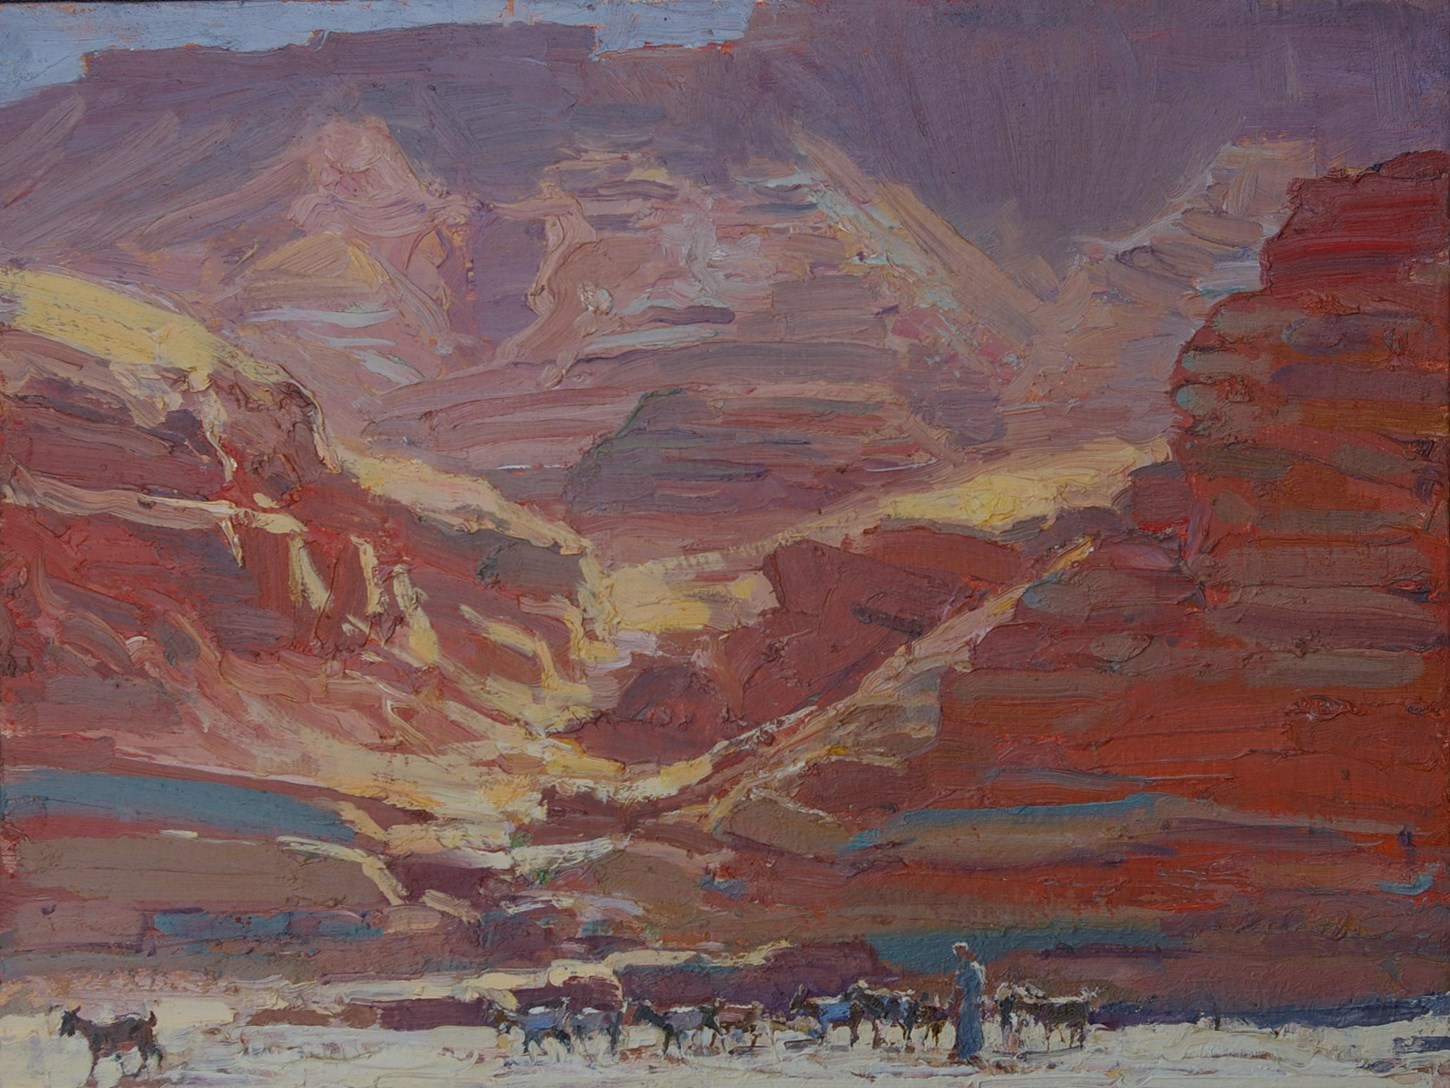 The Red Cliffs, Tamdaght